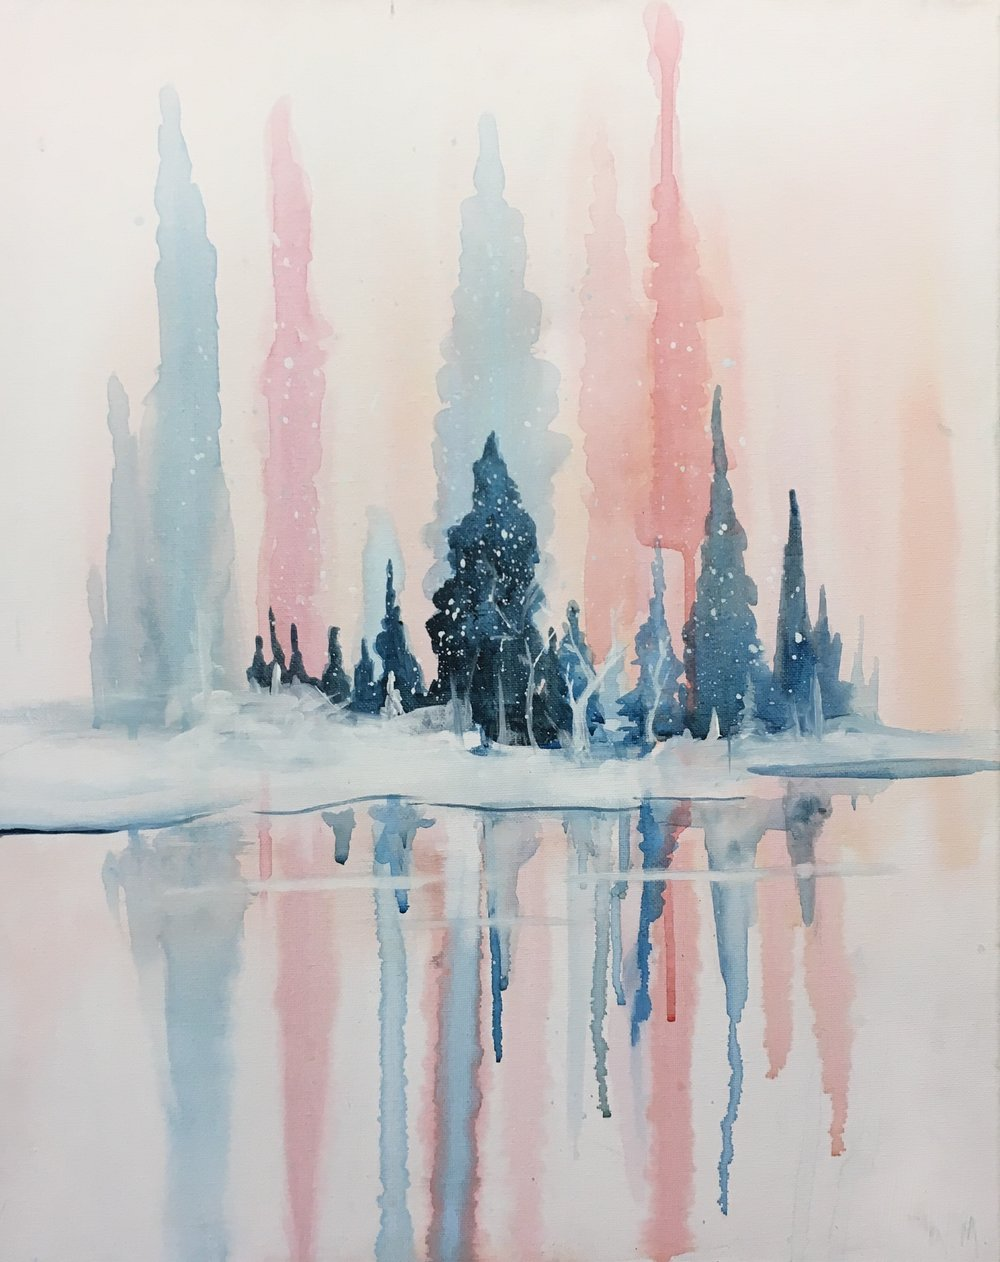 Sip & Paint: Snow Day! - Enjoy using acrylic paint like watercolours, to achieve the soft glow of this Snow Day painting - for complete beginners.** This event is for all ages **Level: EasyPlace: Boston Pizza Salmon ArmPrice: reg. canvas $40/ guestmini canvas $30/ guest